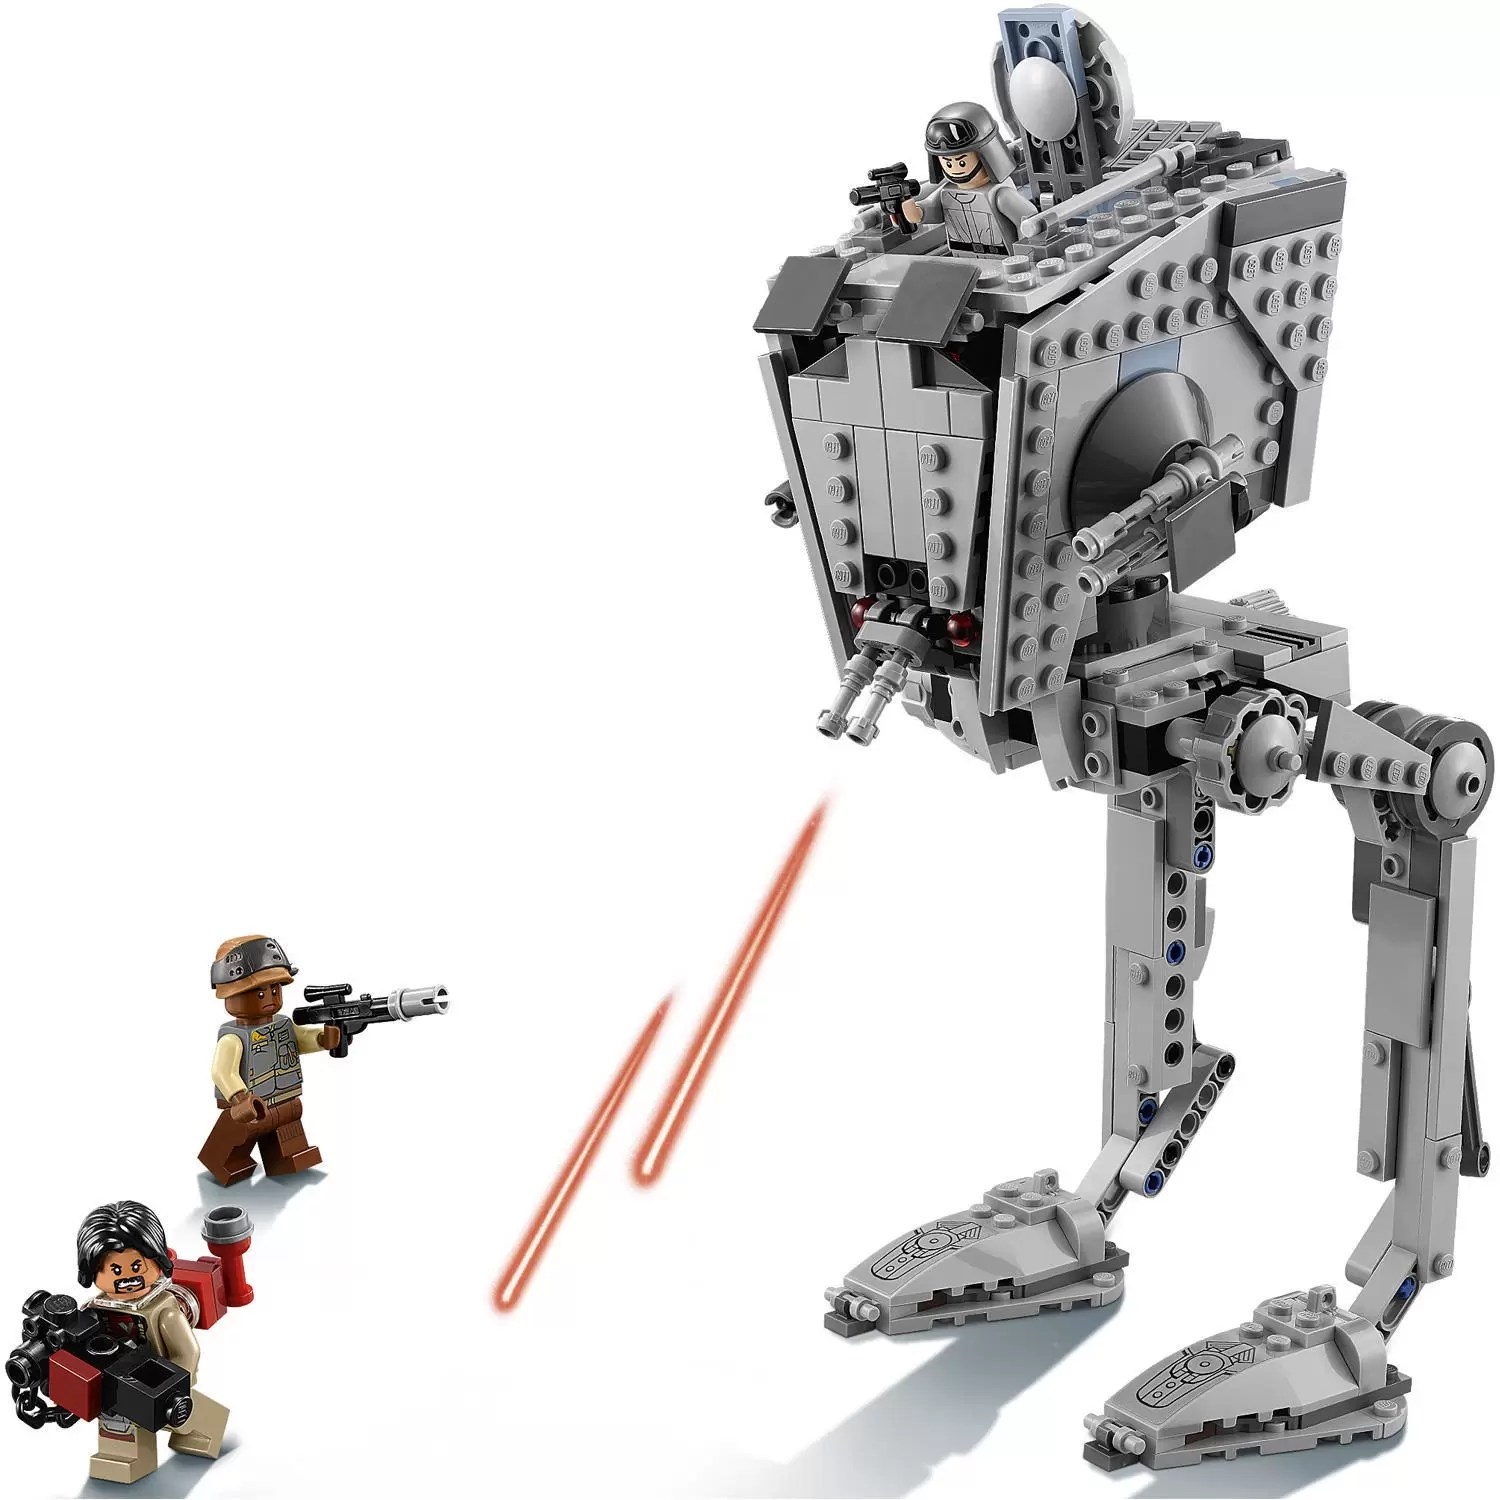 Top 10 Hottest Star Wars Toys And Collectibles For That